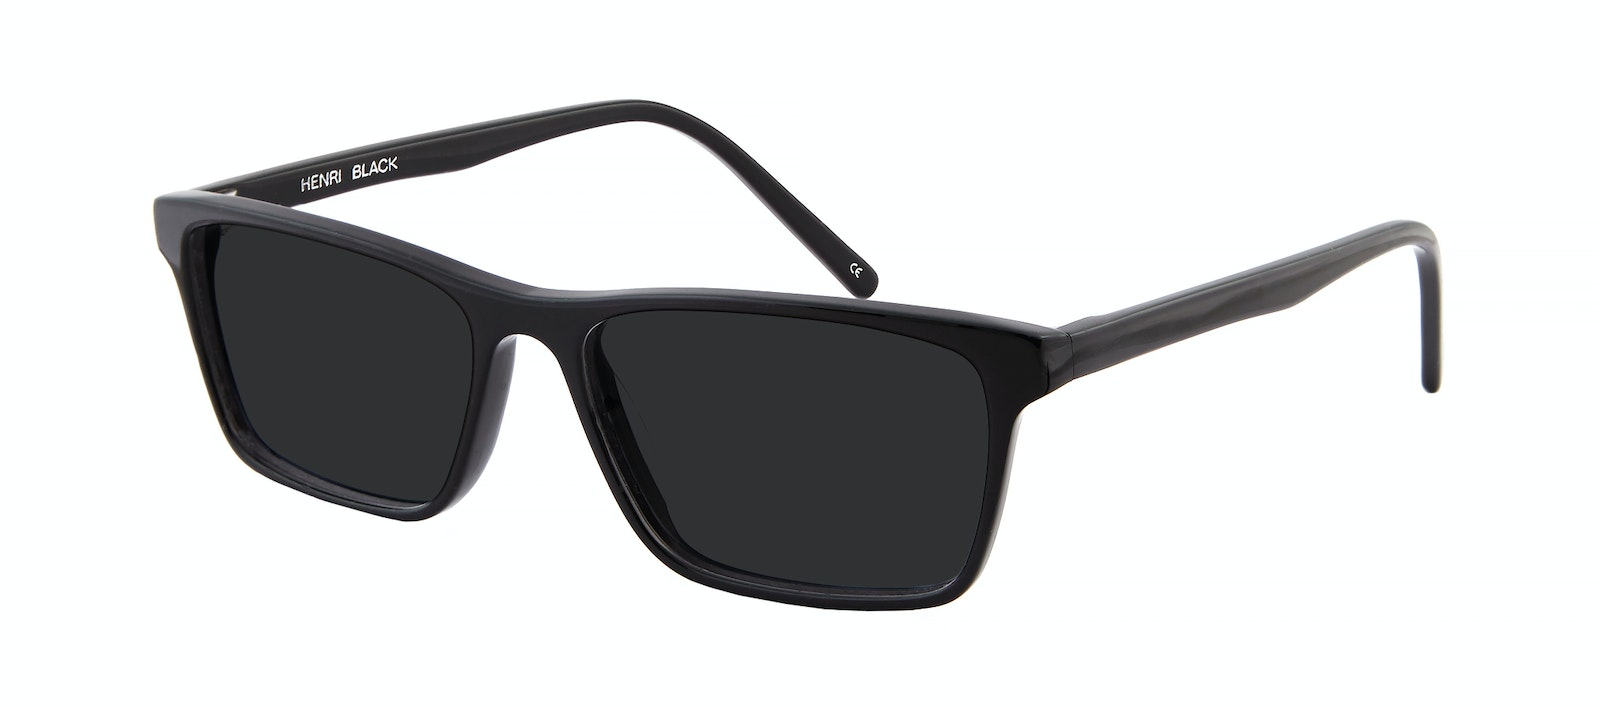 Affordable Fashion Glasses Rectangle Sunglasses Men Henri Black  Tilt